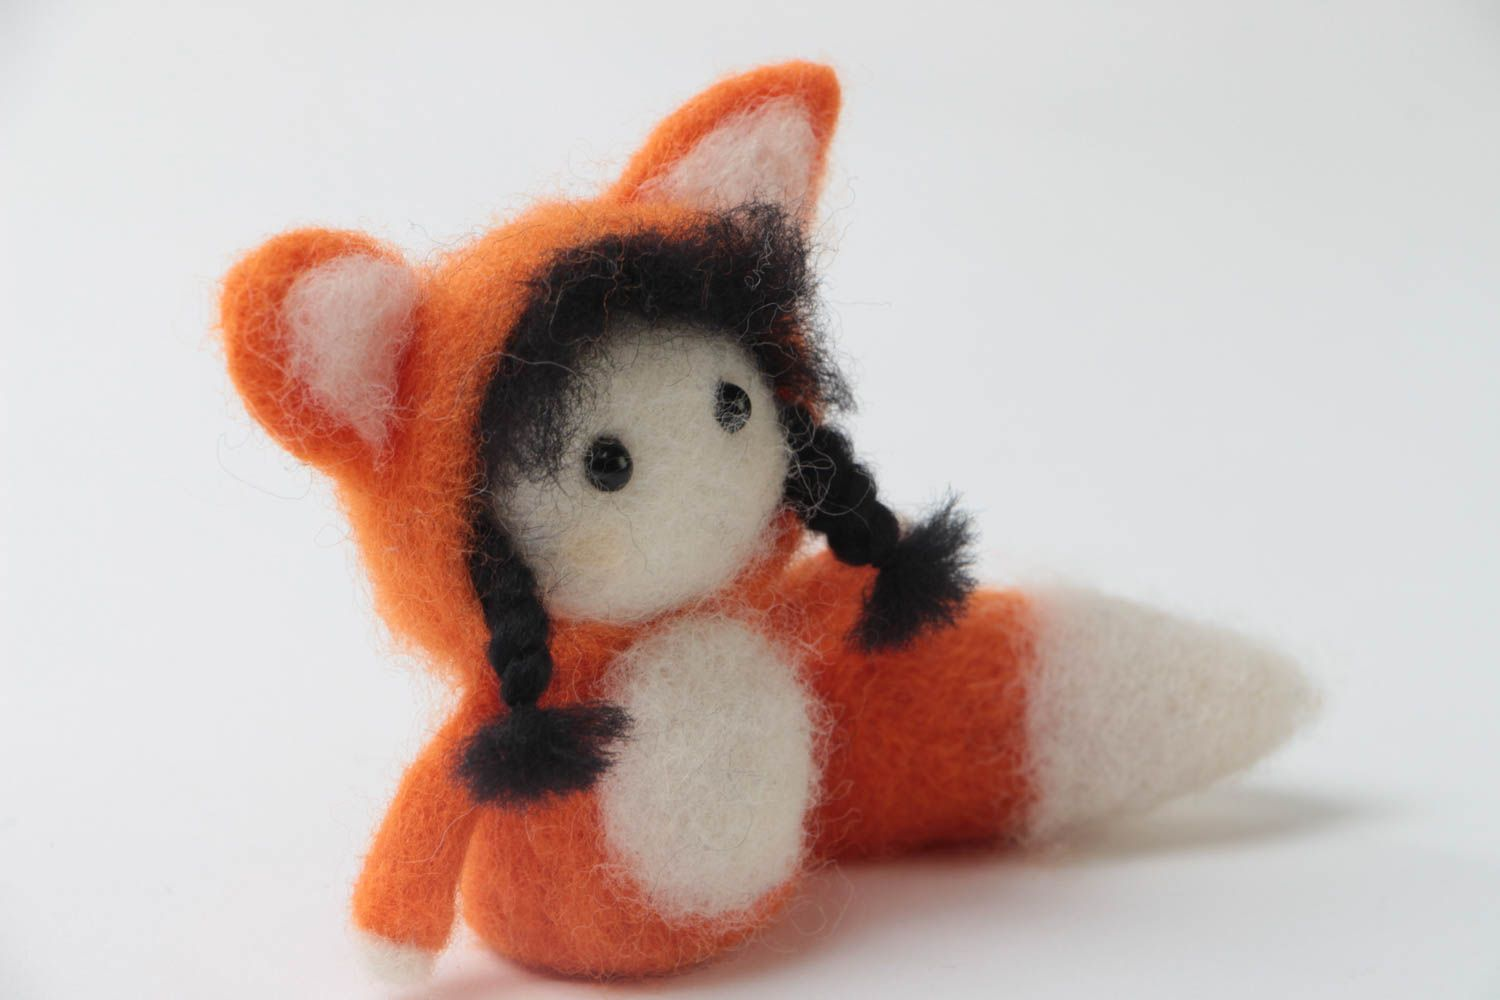 felted toys Small handmade designer felted wool toy fox children's pocket friend - MADEheart.com